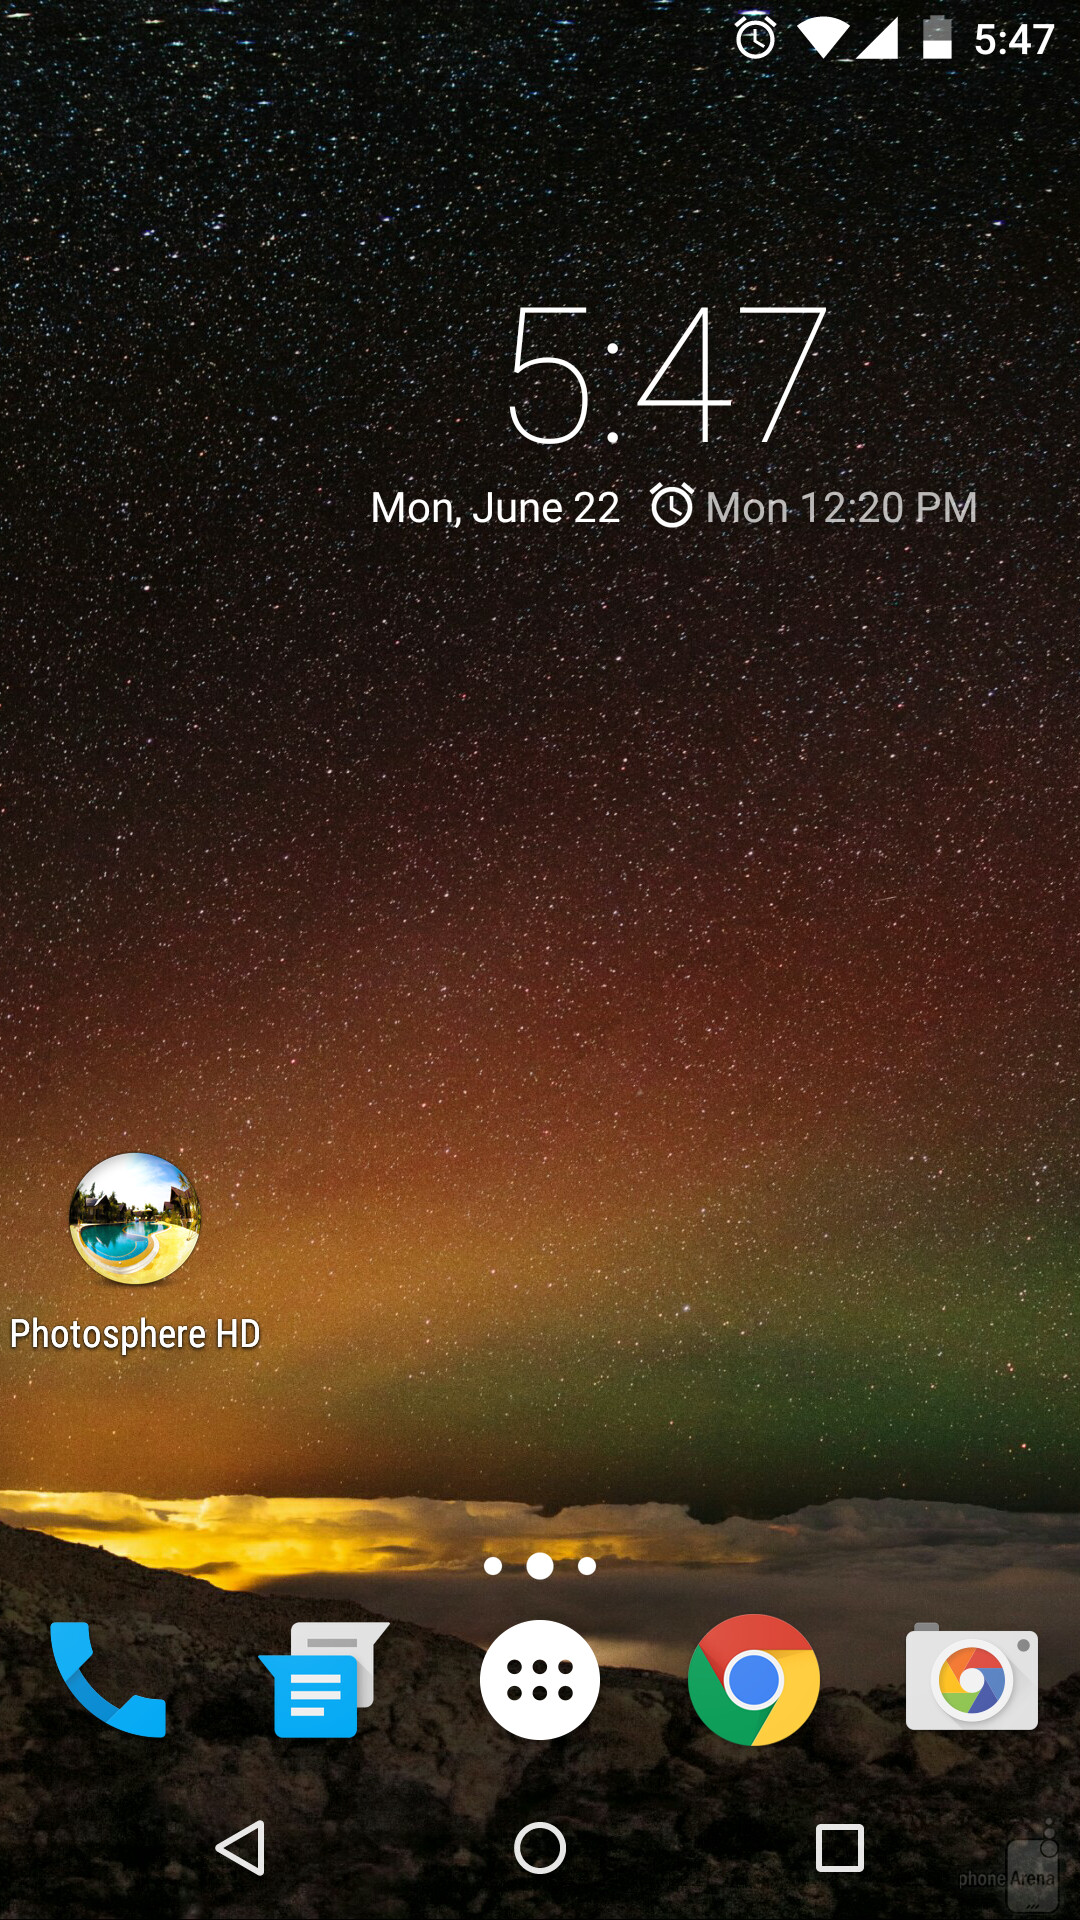 assuming youve already downloaded photosphere hd live wallpaper youll obviously have